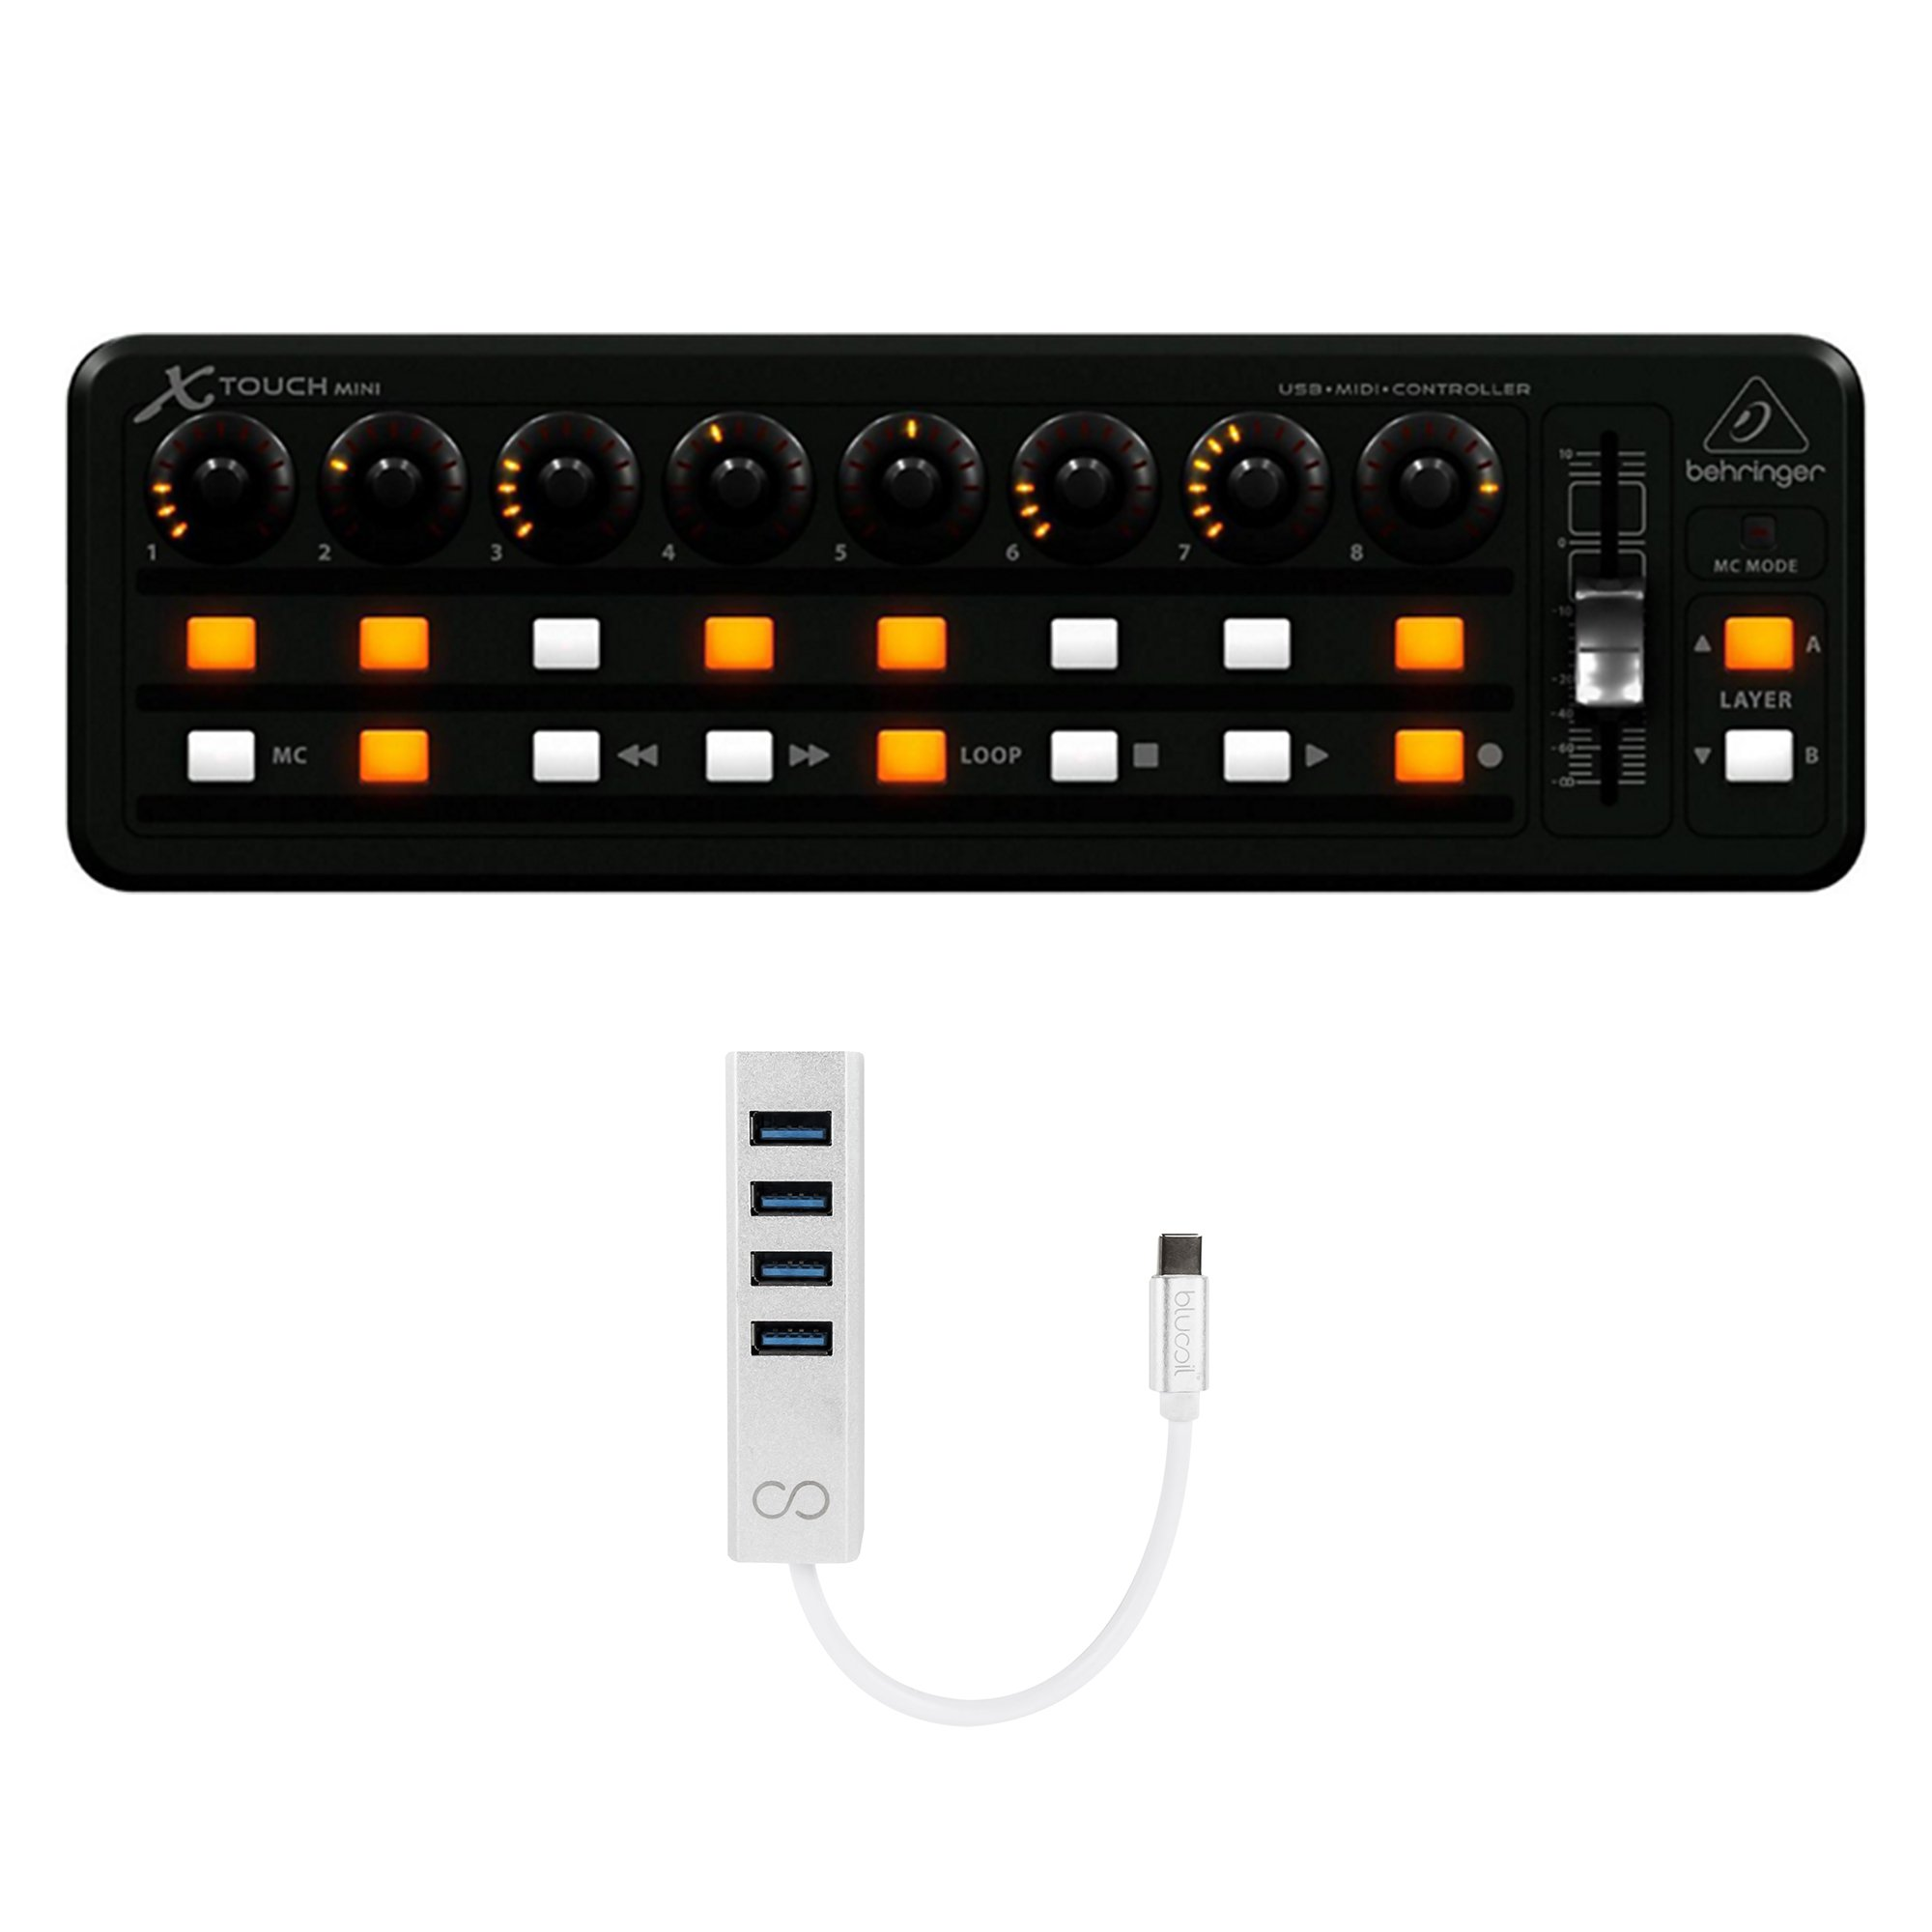 Behringer X-TOUCH MINI USB Mixing Controller with 8 Rotary Control Knobs Bundle with Blucoil USB Type-C Mini Hub with 4 USB Ports